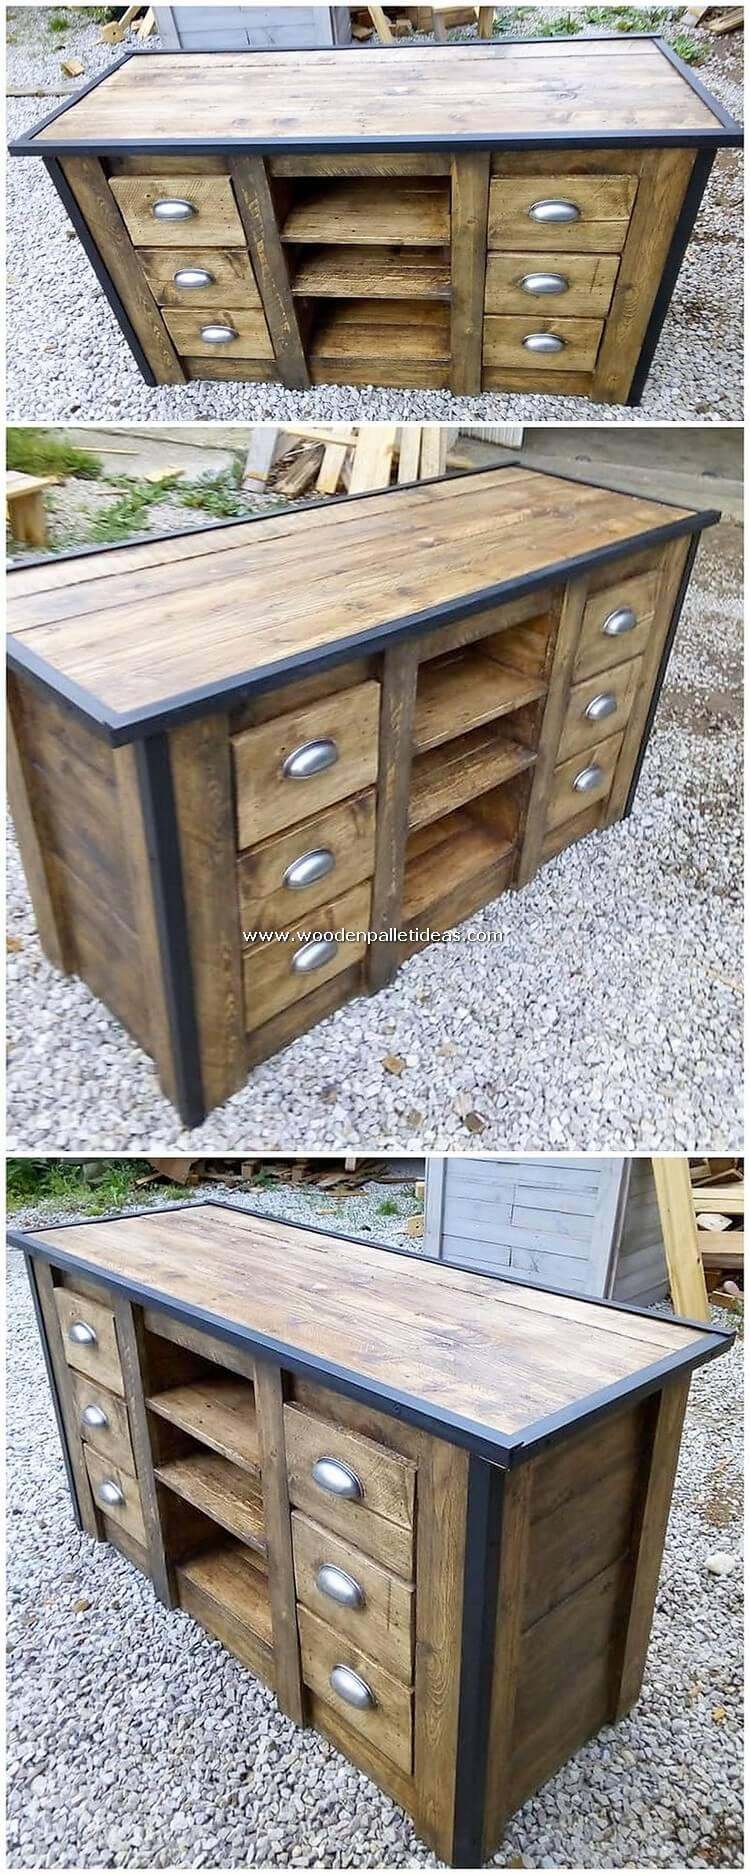 Recycled Pallet Wood Cabinet